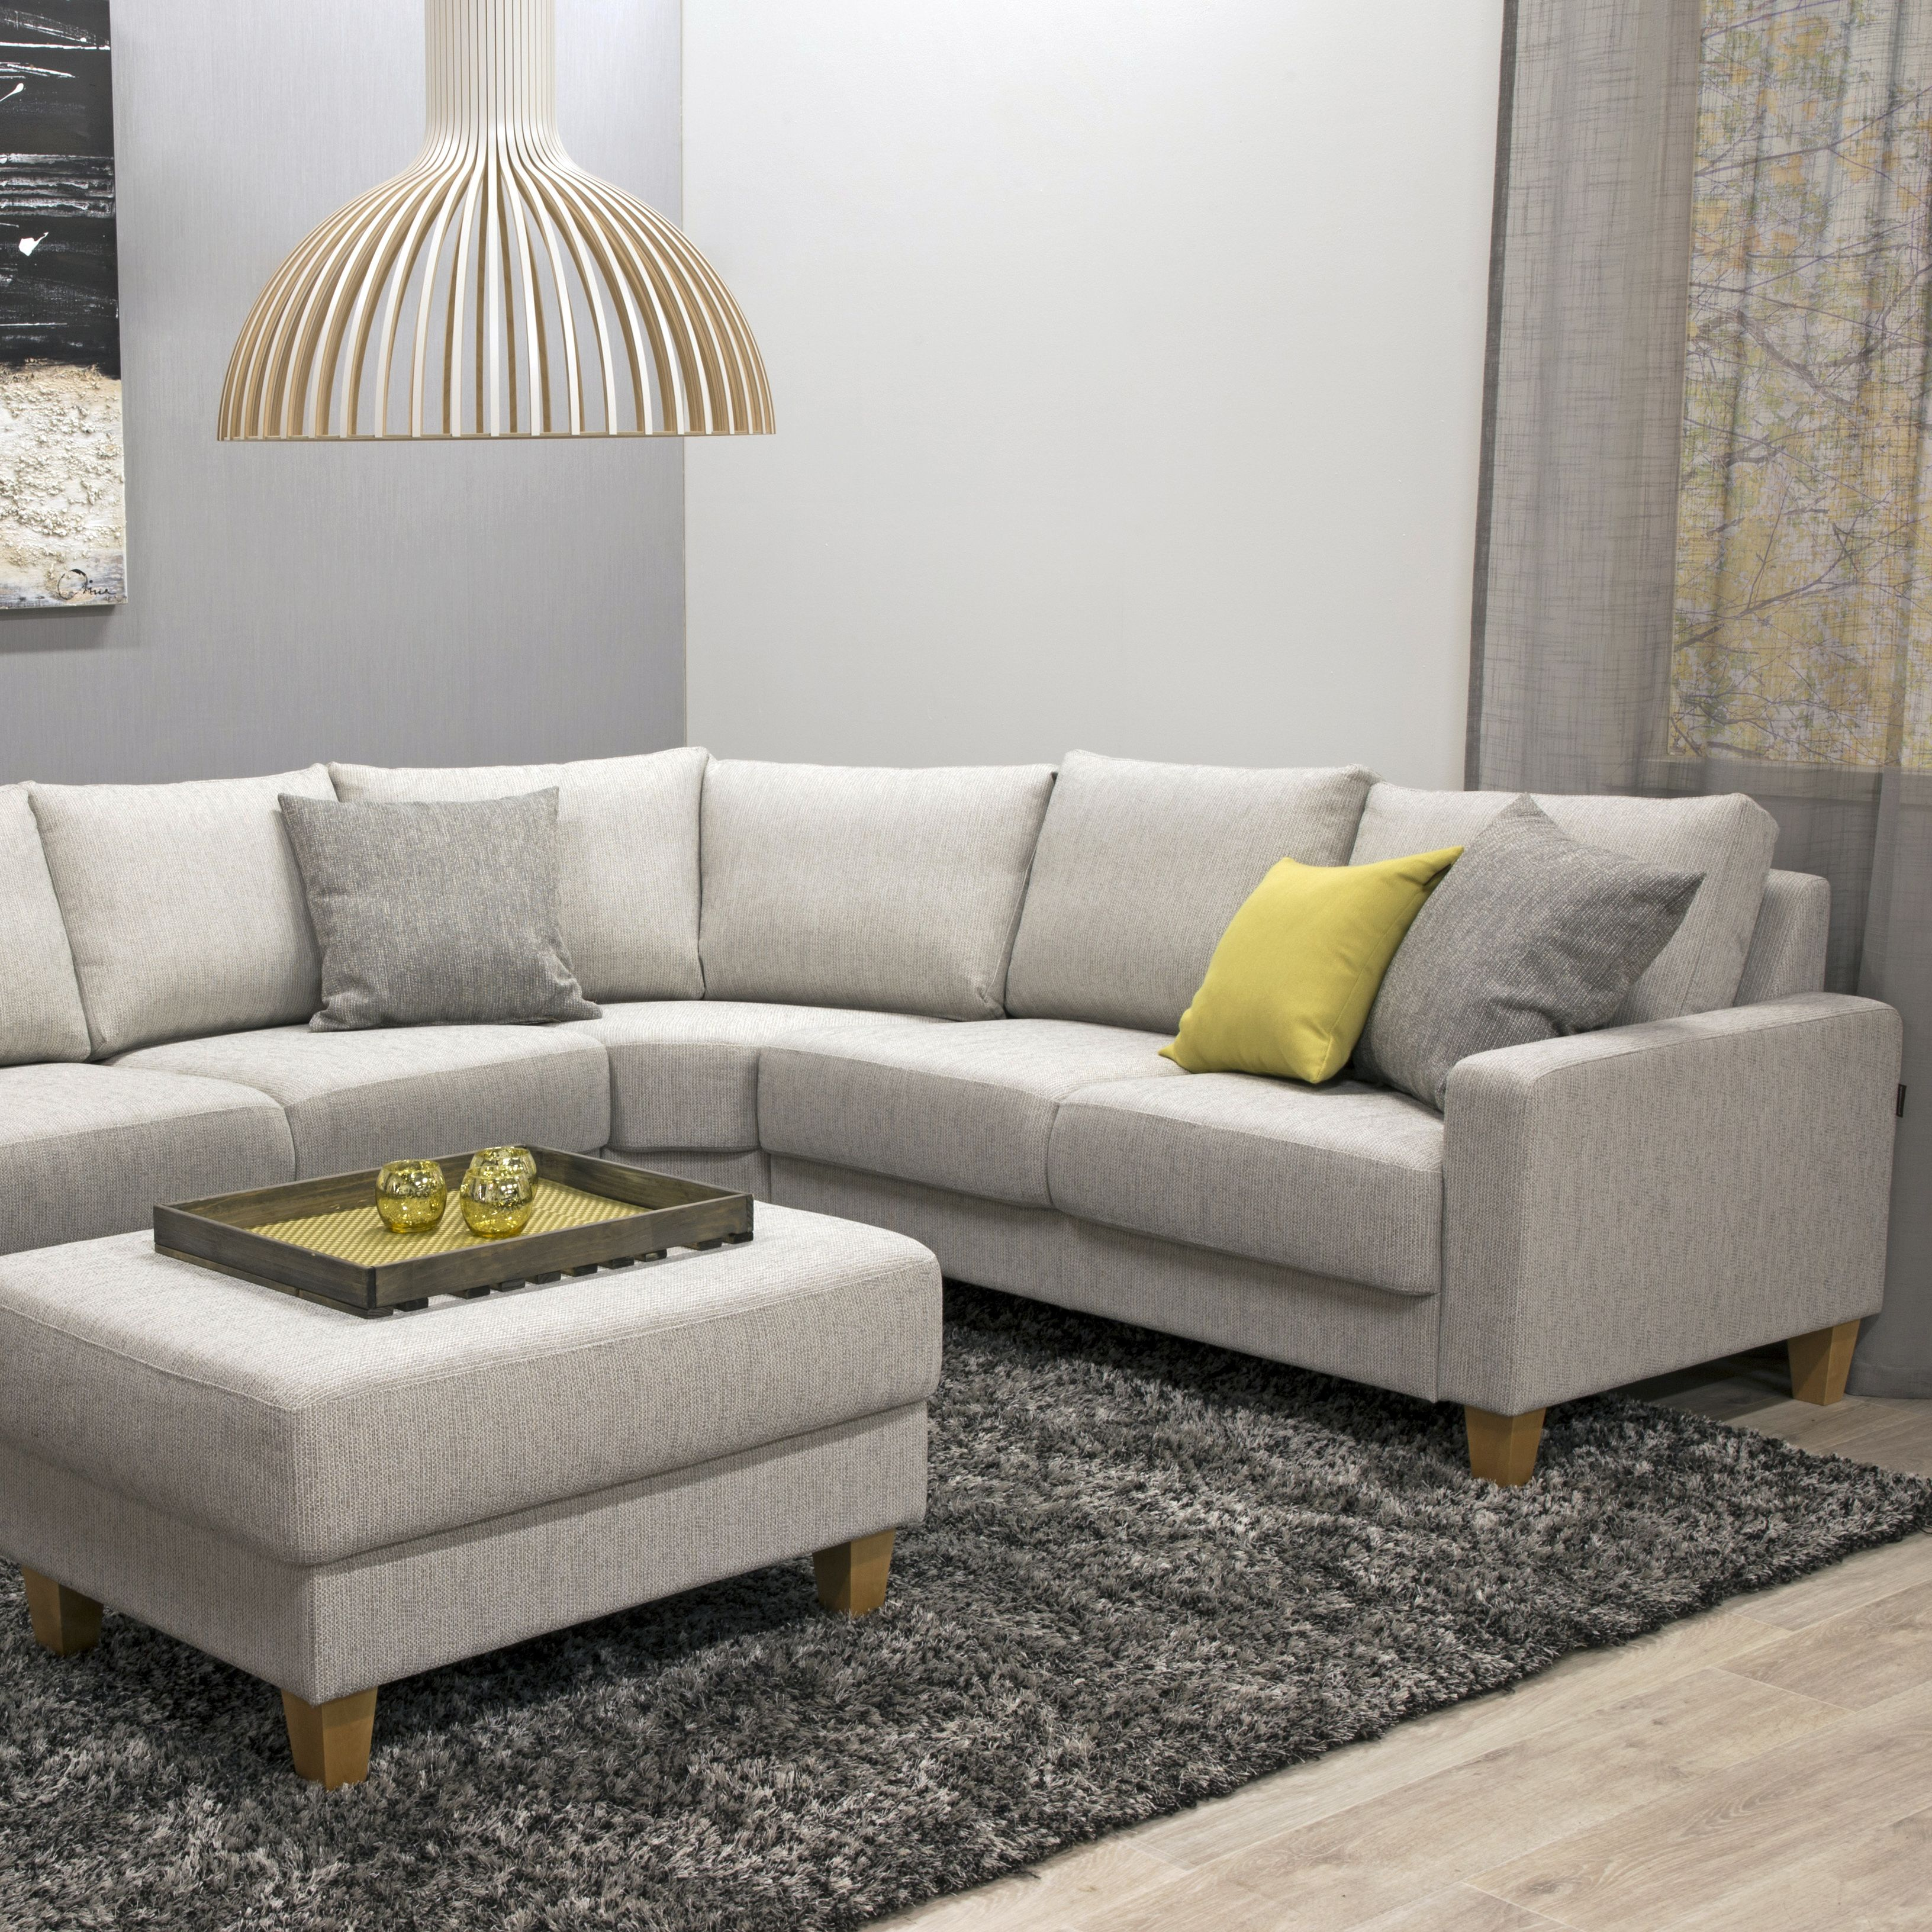 Monika | Sectional sofa, Outdoor sectional sofa, Sectional couch